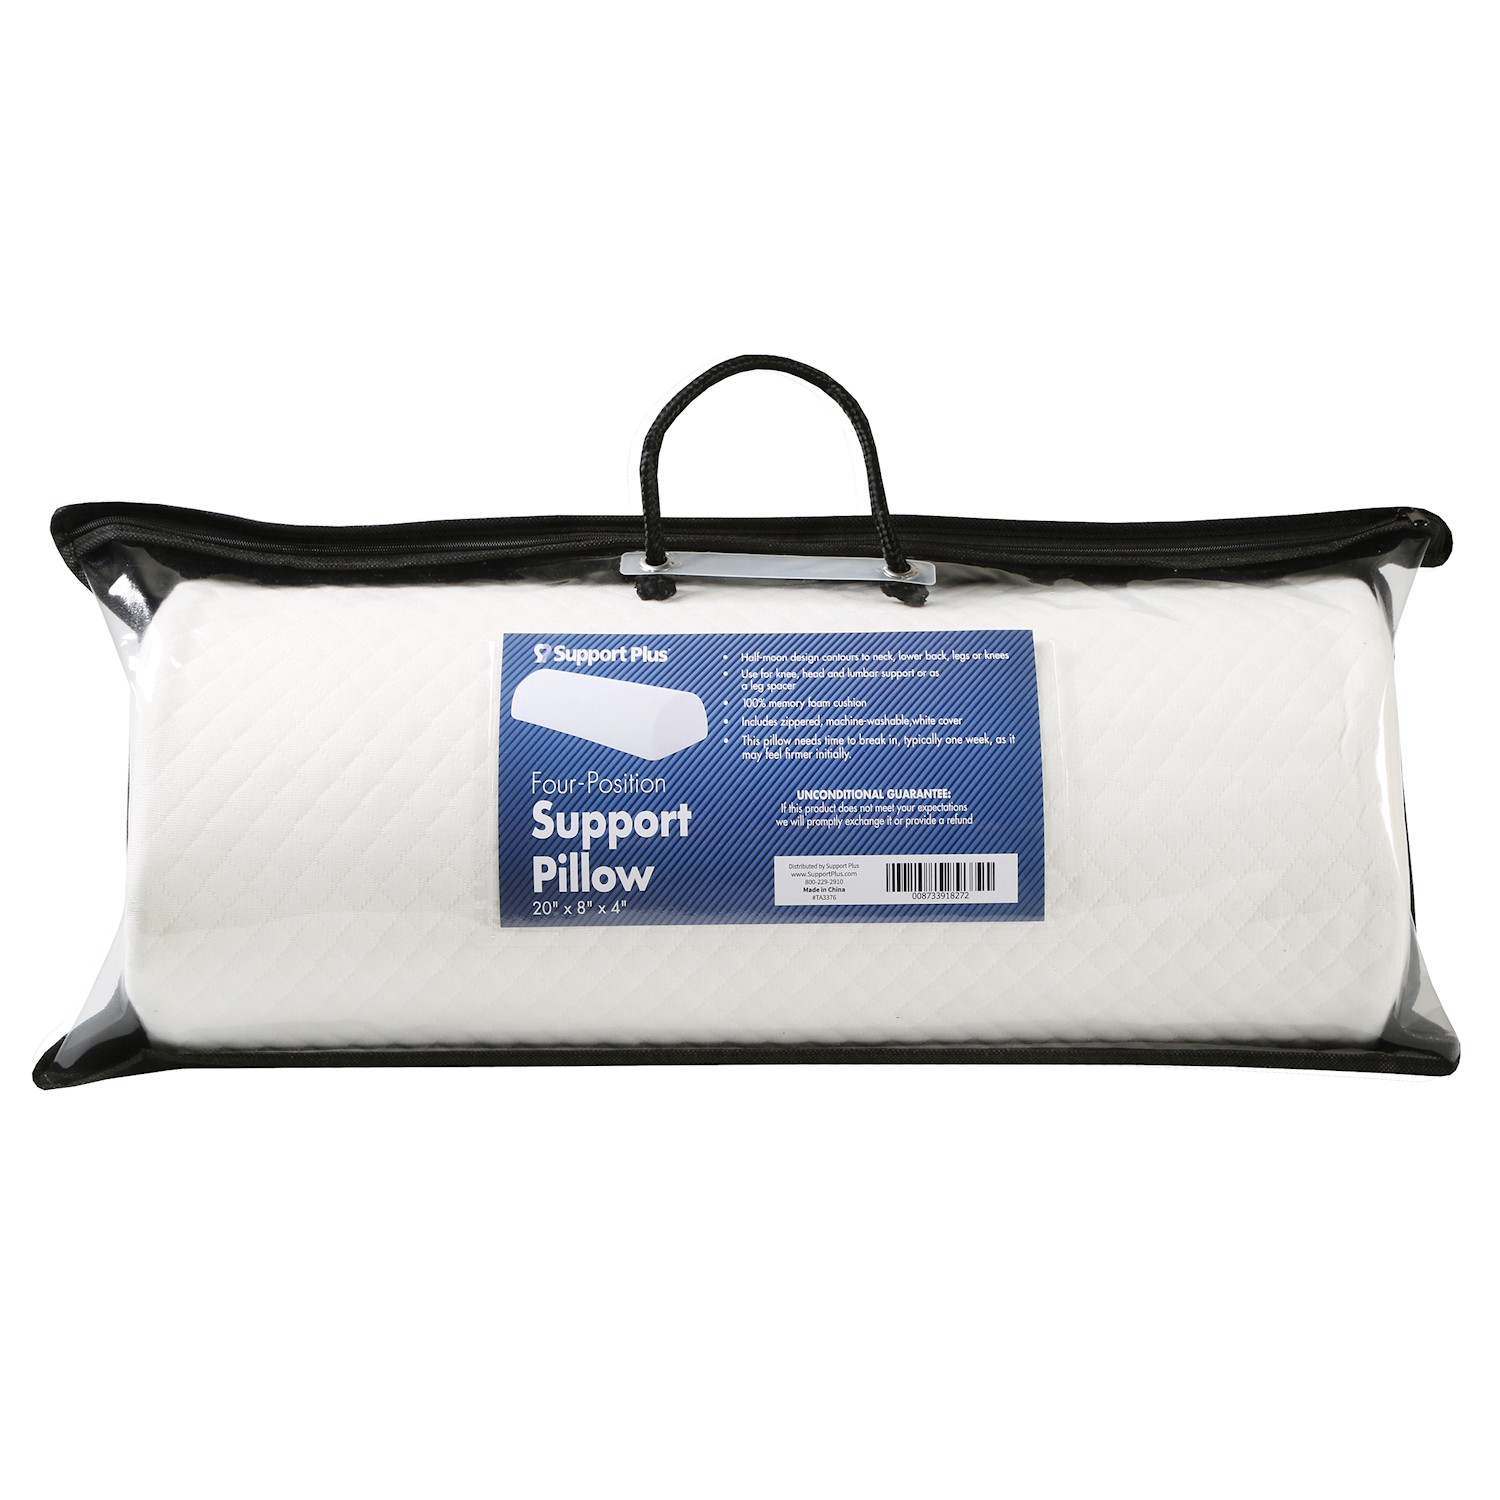 Body Pillow for Back Pain Relief Half-Moon Bolster//Wedge Provides Best Support